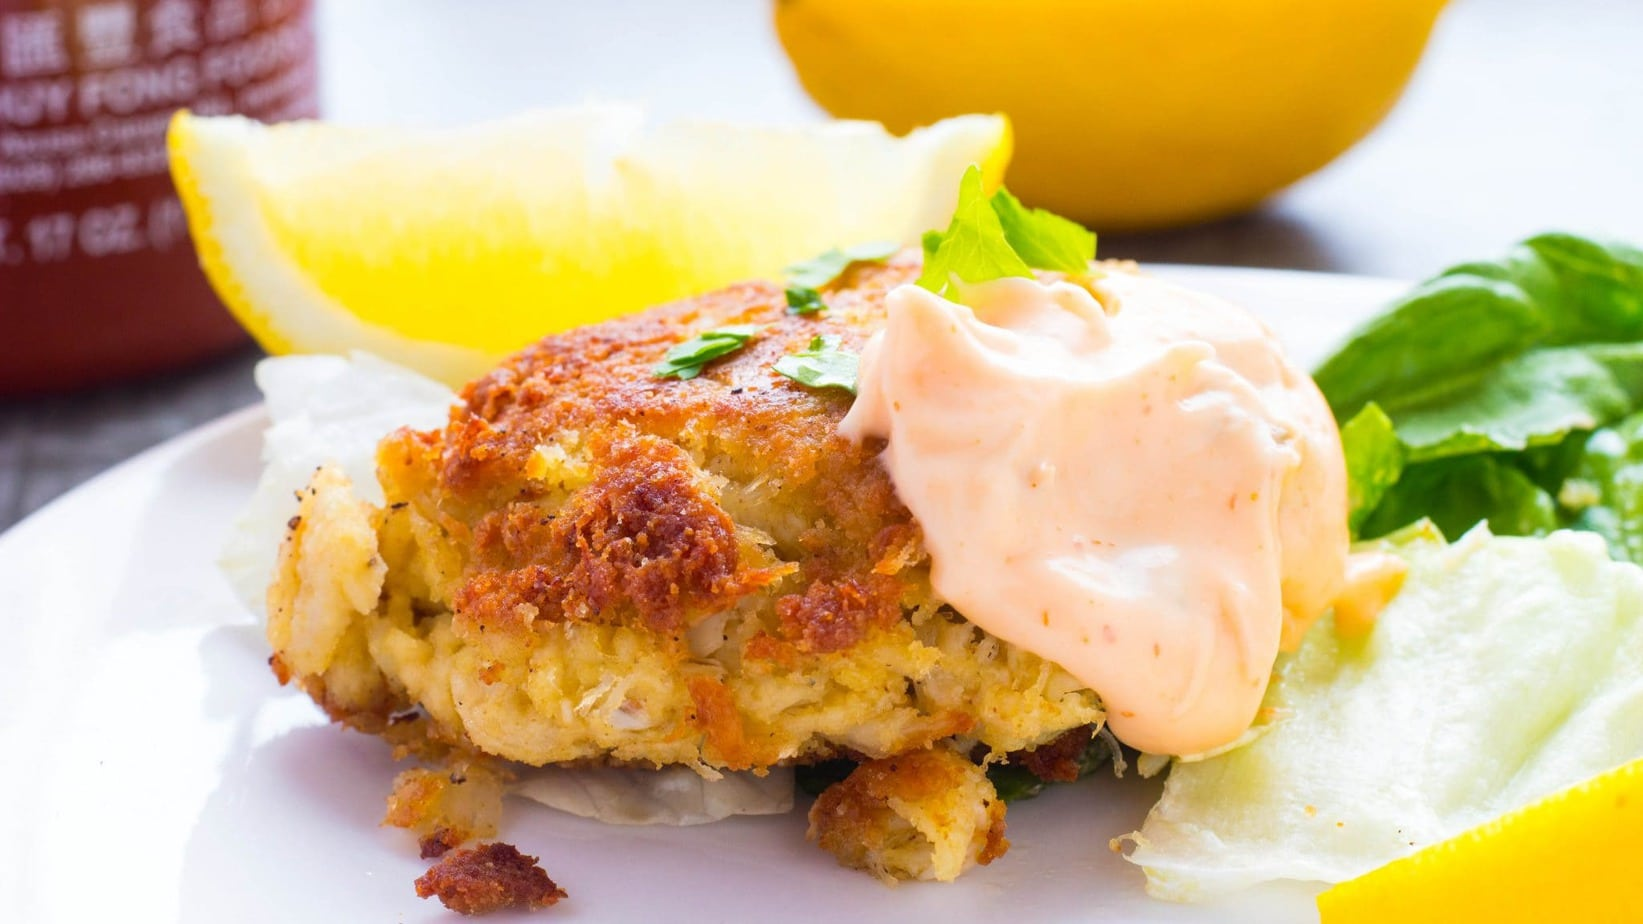 Homemade Maryland Lump Crab Cakes with Spicy Tarter Sauce are an easy, quick and tasty dinner, lunch or appetizers. Ready in 15 min with canned crab meat.